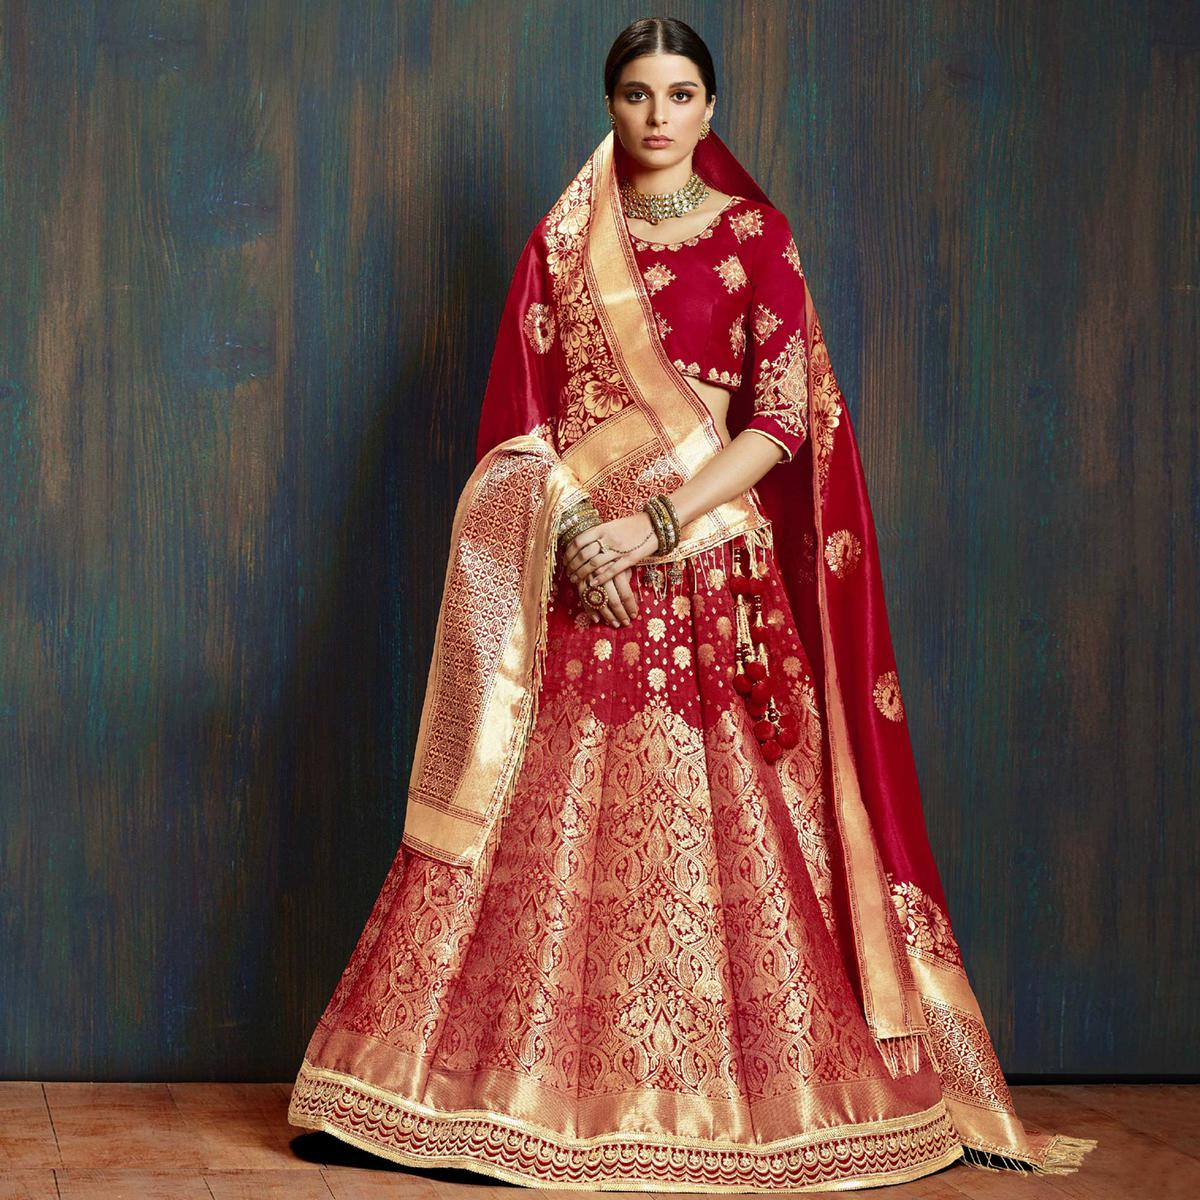 fbf9c7e840 Buy Amazing Maroon Colored Wedding Wear Embroidered Pure Banarasi Silk Lehenga  Choli For womens online India, Best Prices, Reviews - Peachmode